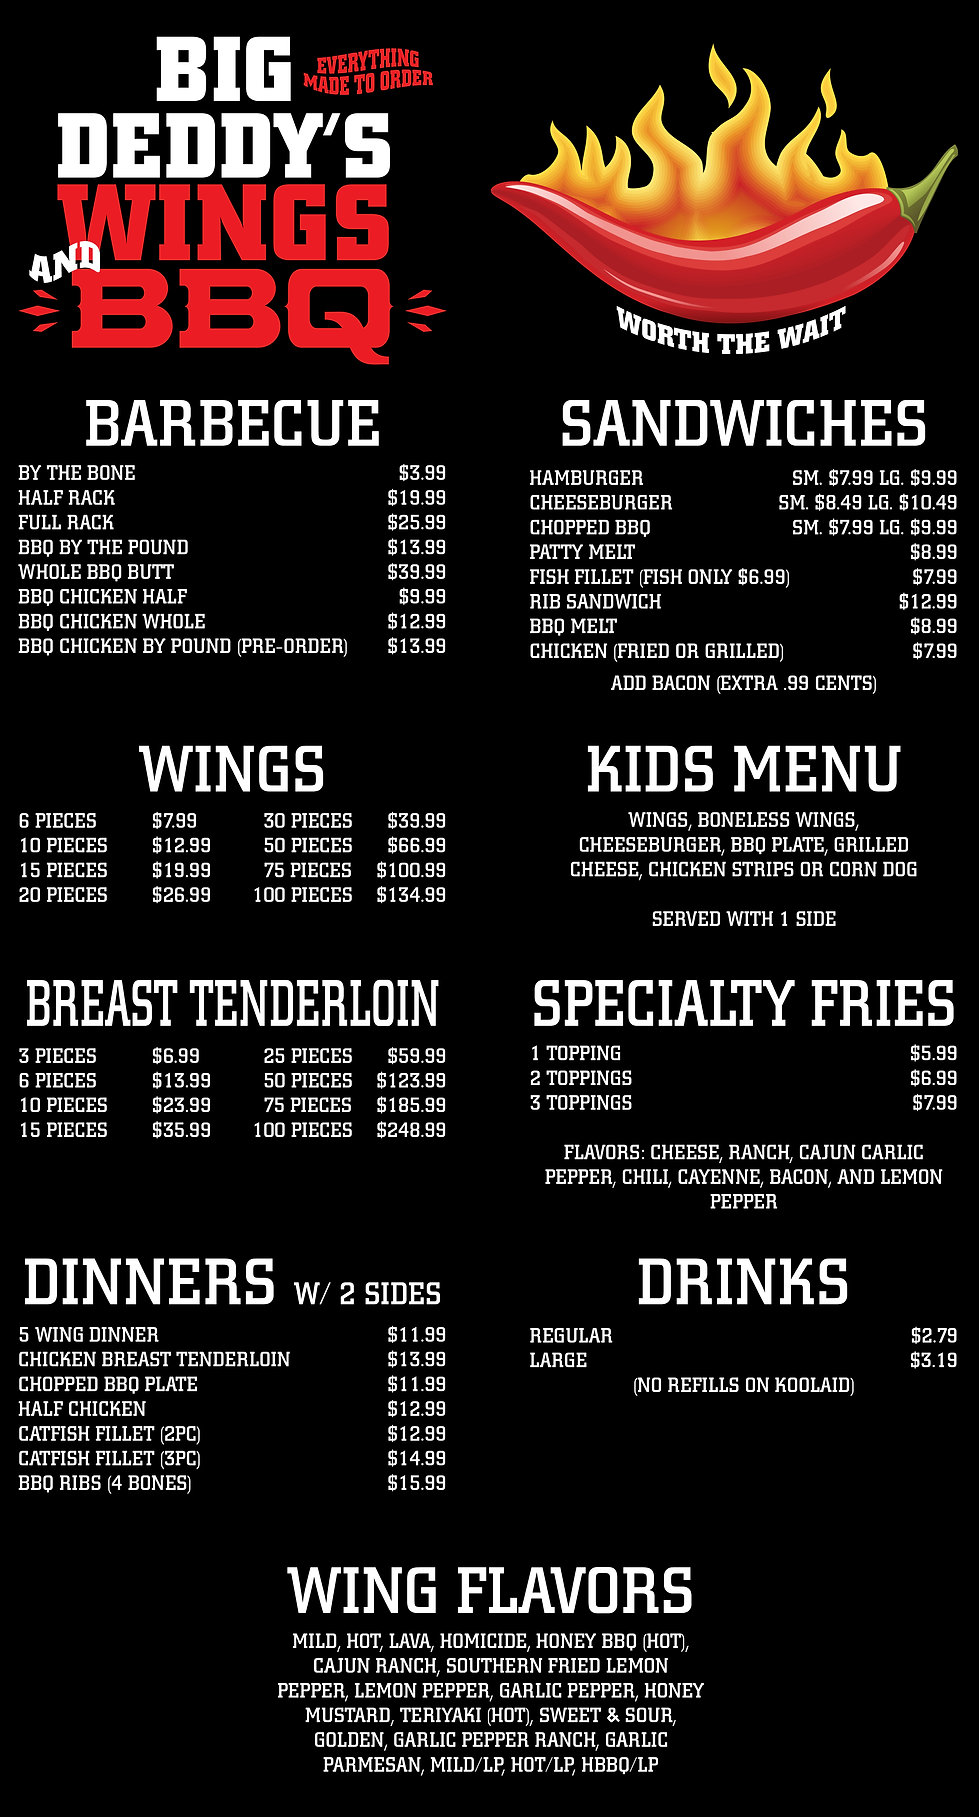 Web Menu for Big Deddy's Updated 2021-01